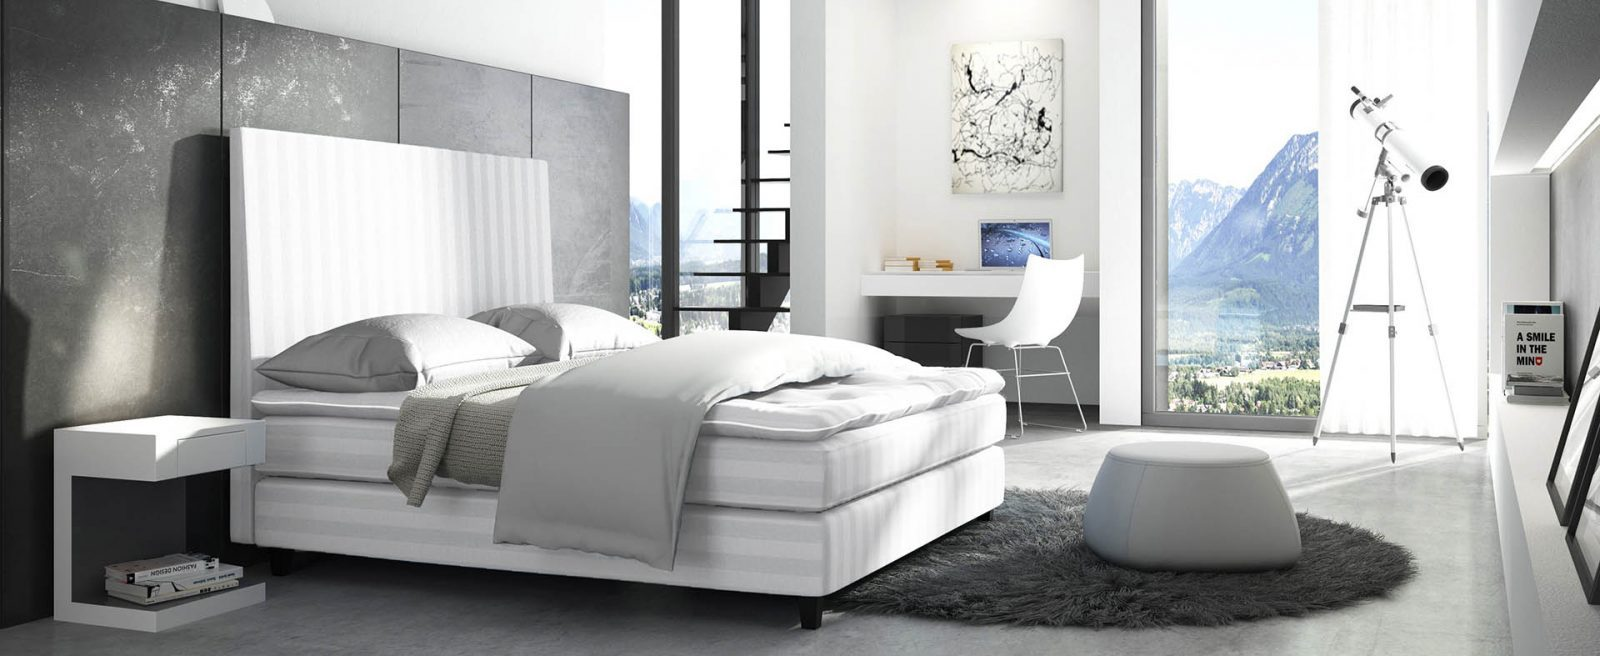 pauly-beds-continental-luxury-mattress-sophia-small